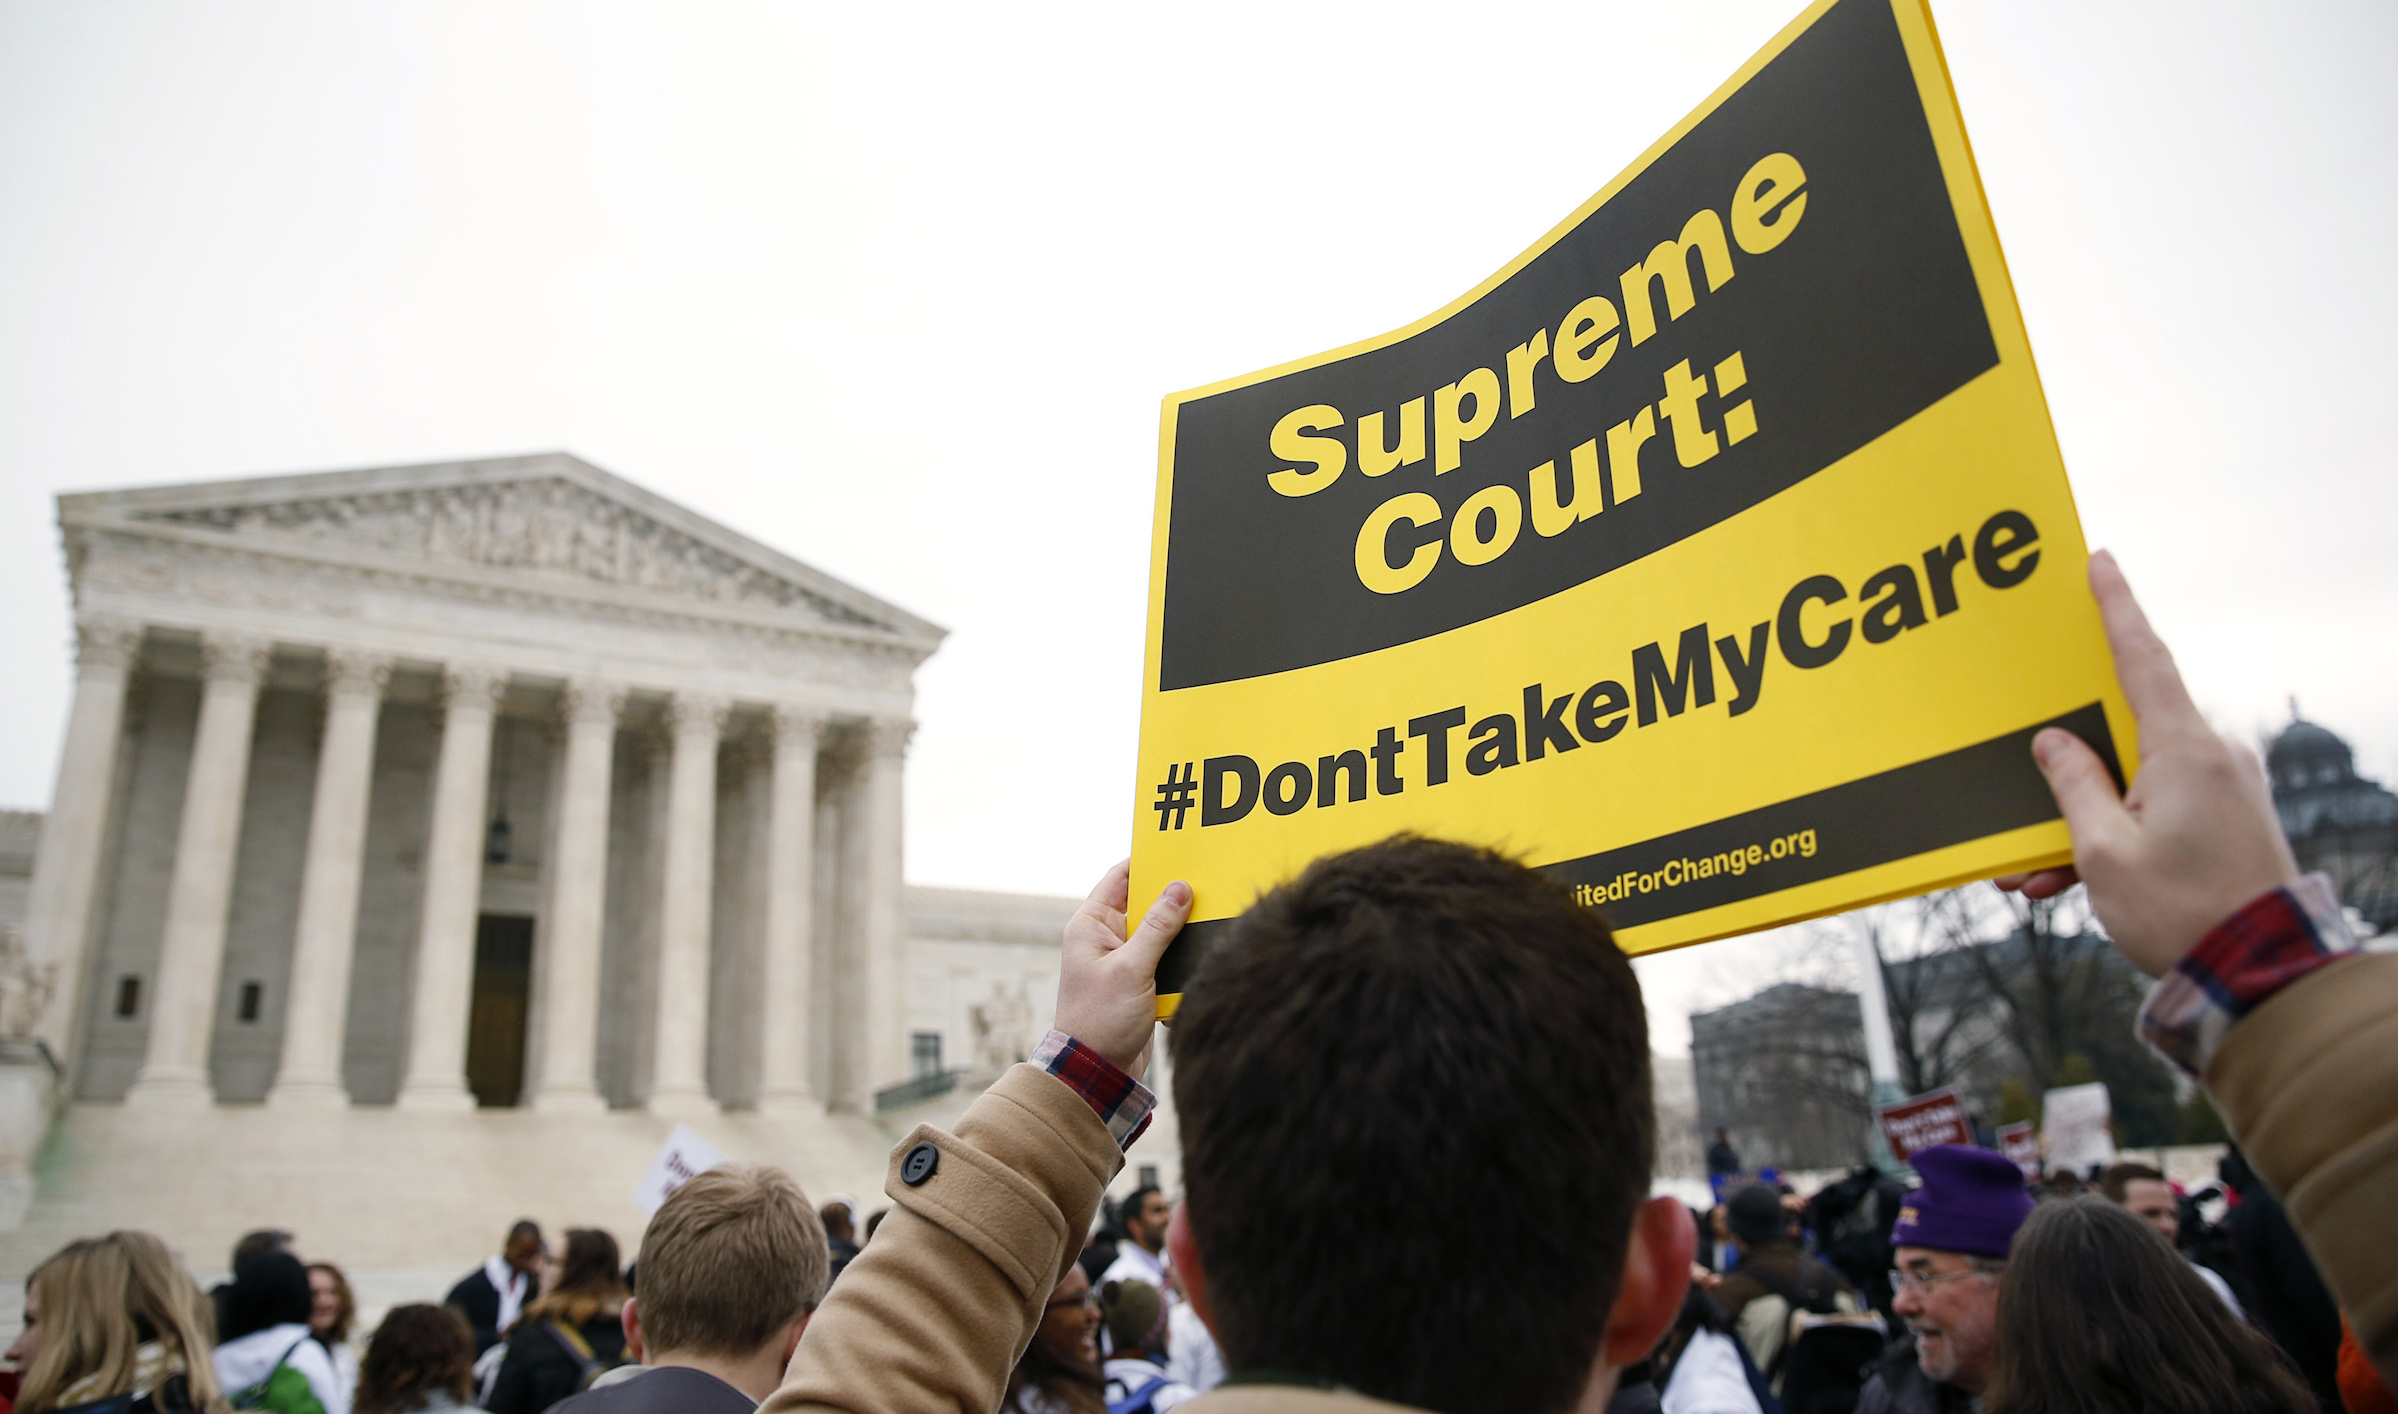 A demonstrator in favor of the Affordable Care Act walks with a sign in front of the Supreme Court in Washington March 4, 2015. The U.S. Supreme Court will weigh a second major case, King v. Burwell, targeting President Barack Obama's healthcare law on Wednesday when it considers a conservative challenge to tax subsidies critical to the measure's implementation.       REUTERS/Gary Cameron     (UNITED STATES - Tags: POLITICS HEALTH) - RTR4S1YH